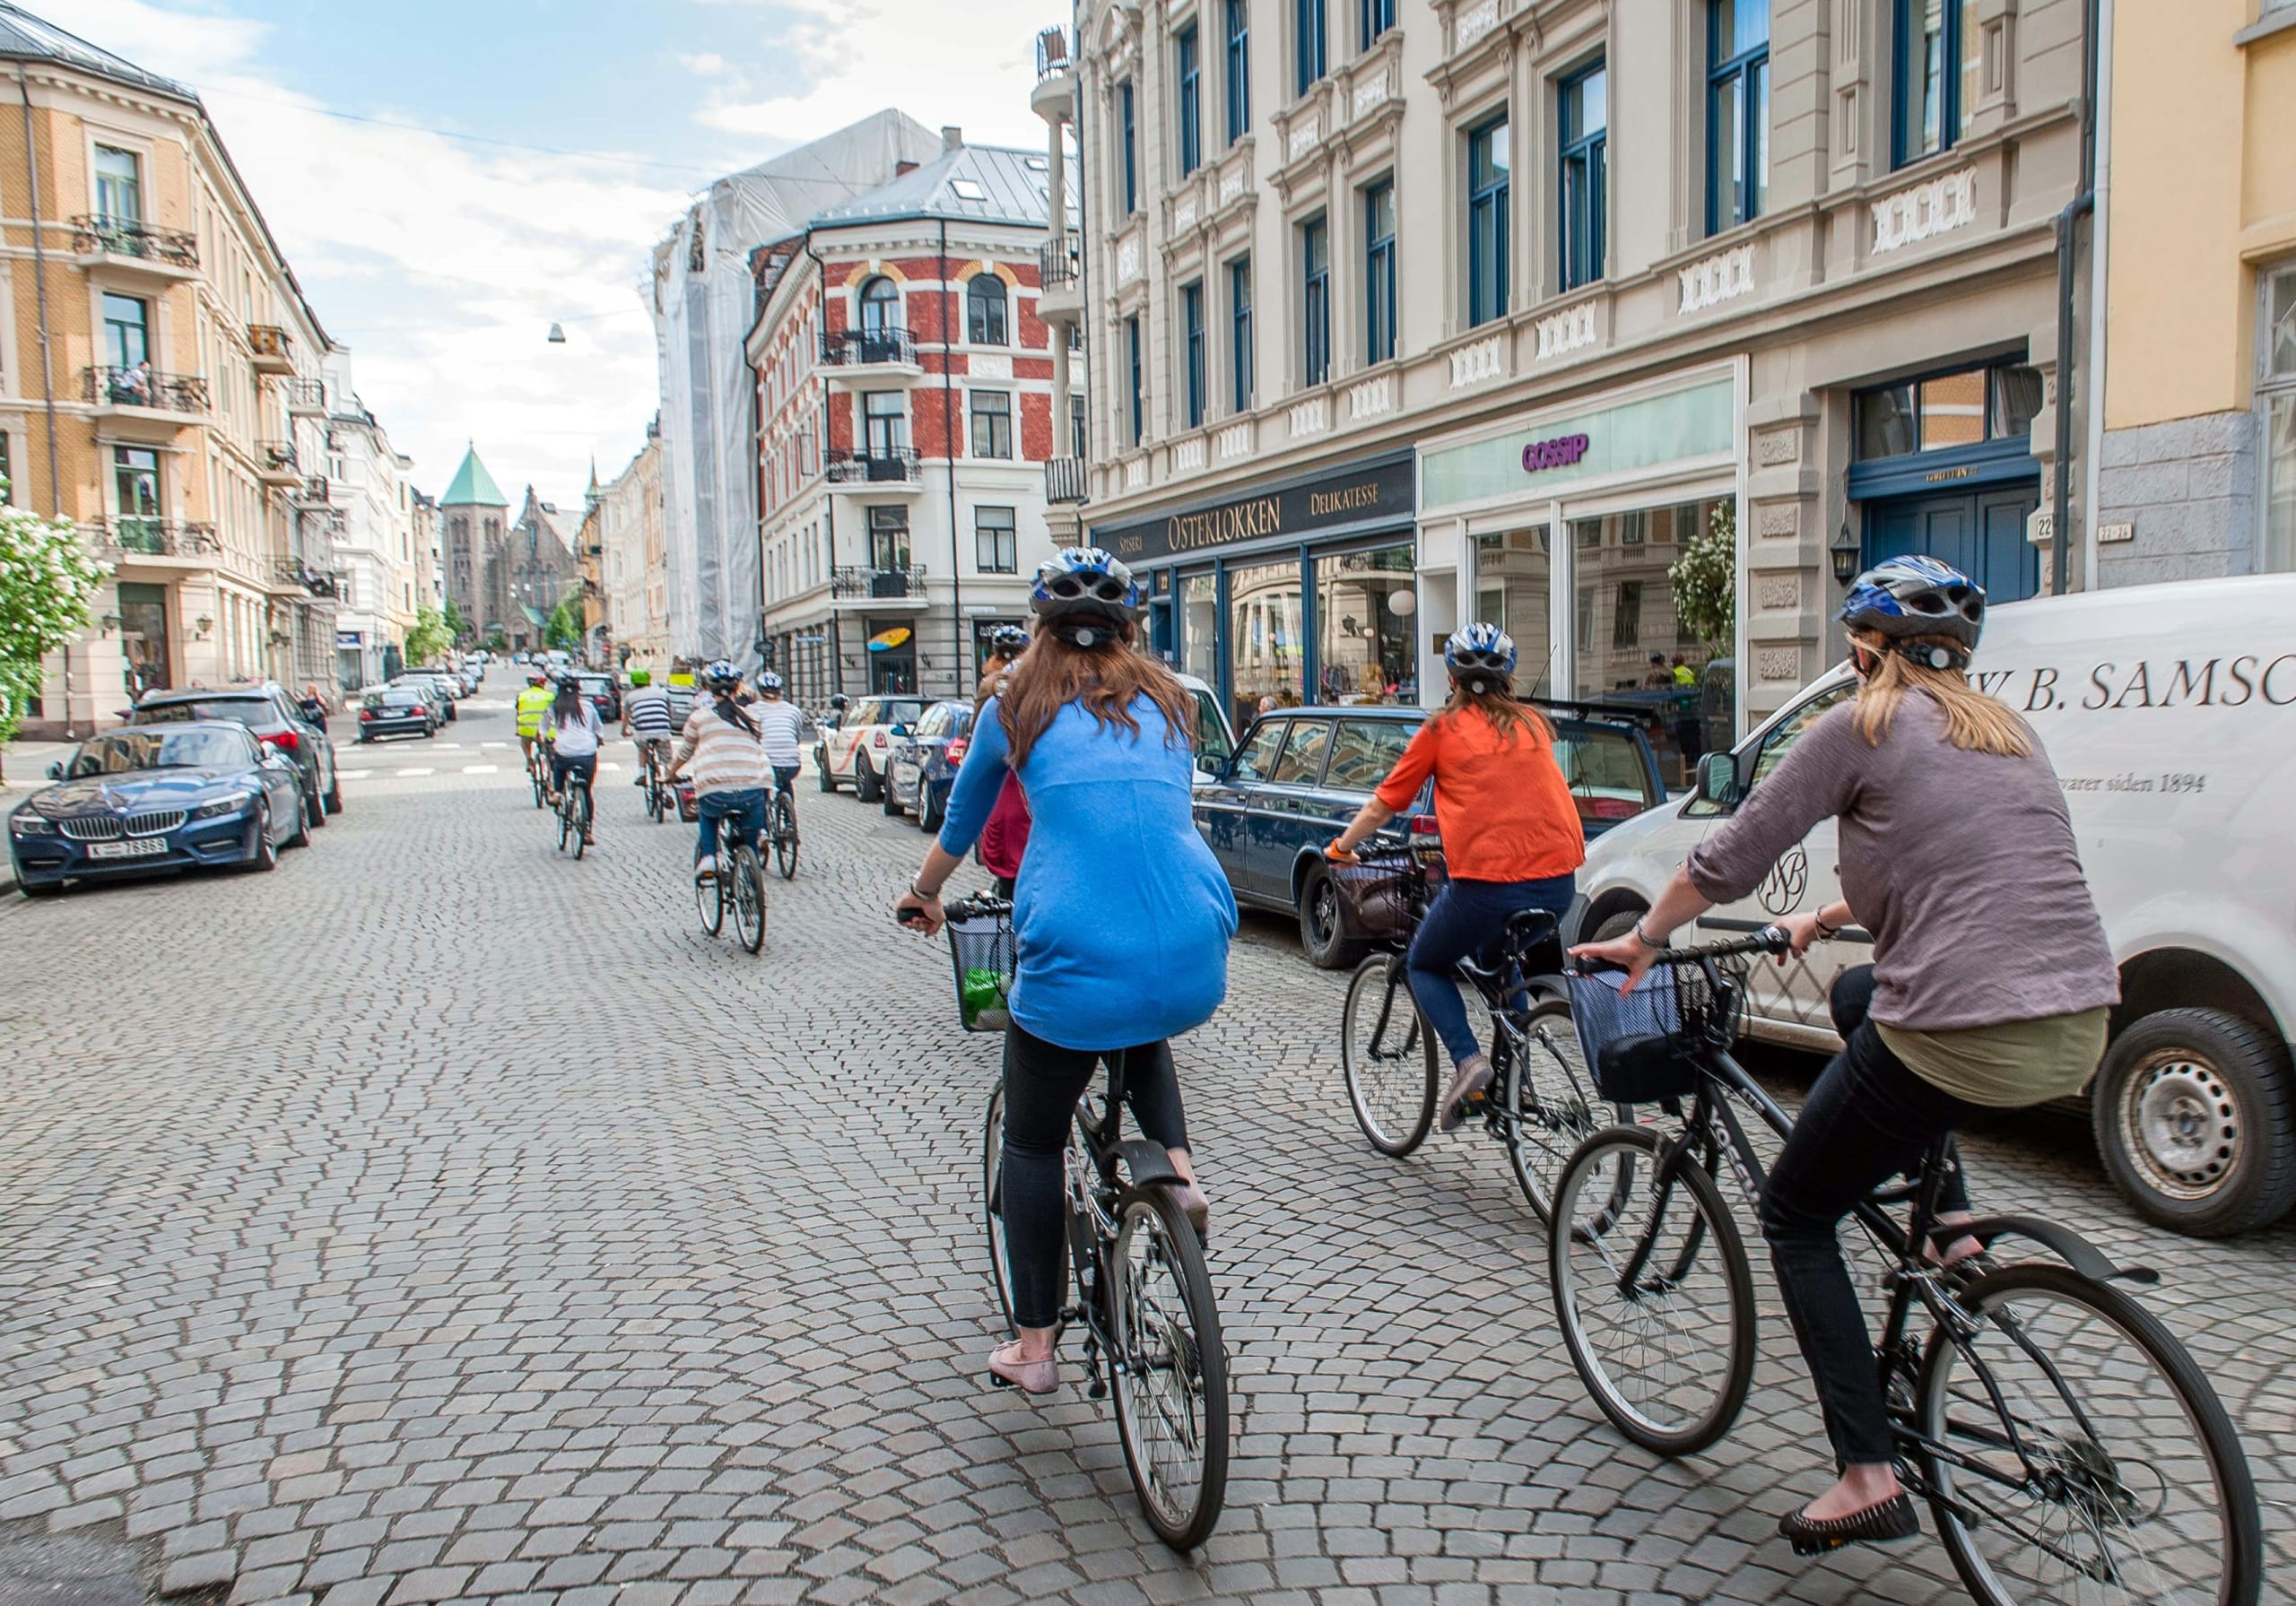 A group of bikers riding through cobble stone streets downtown Oslo.